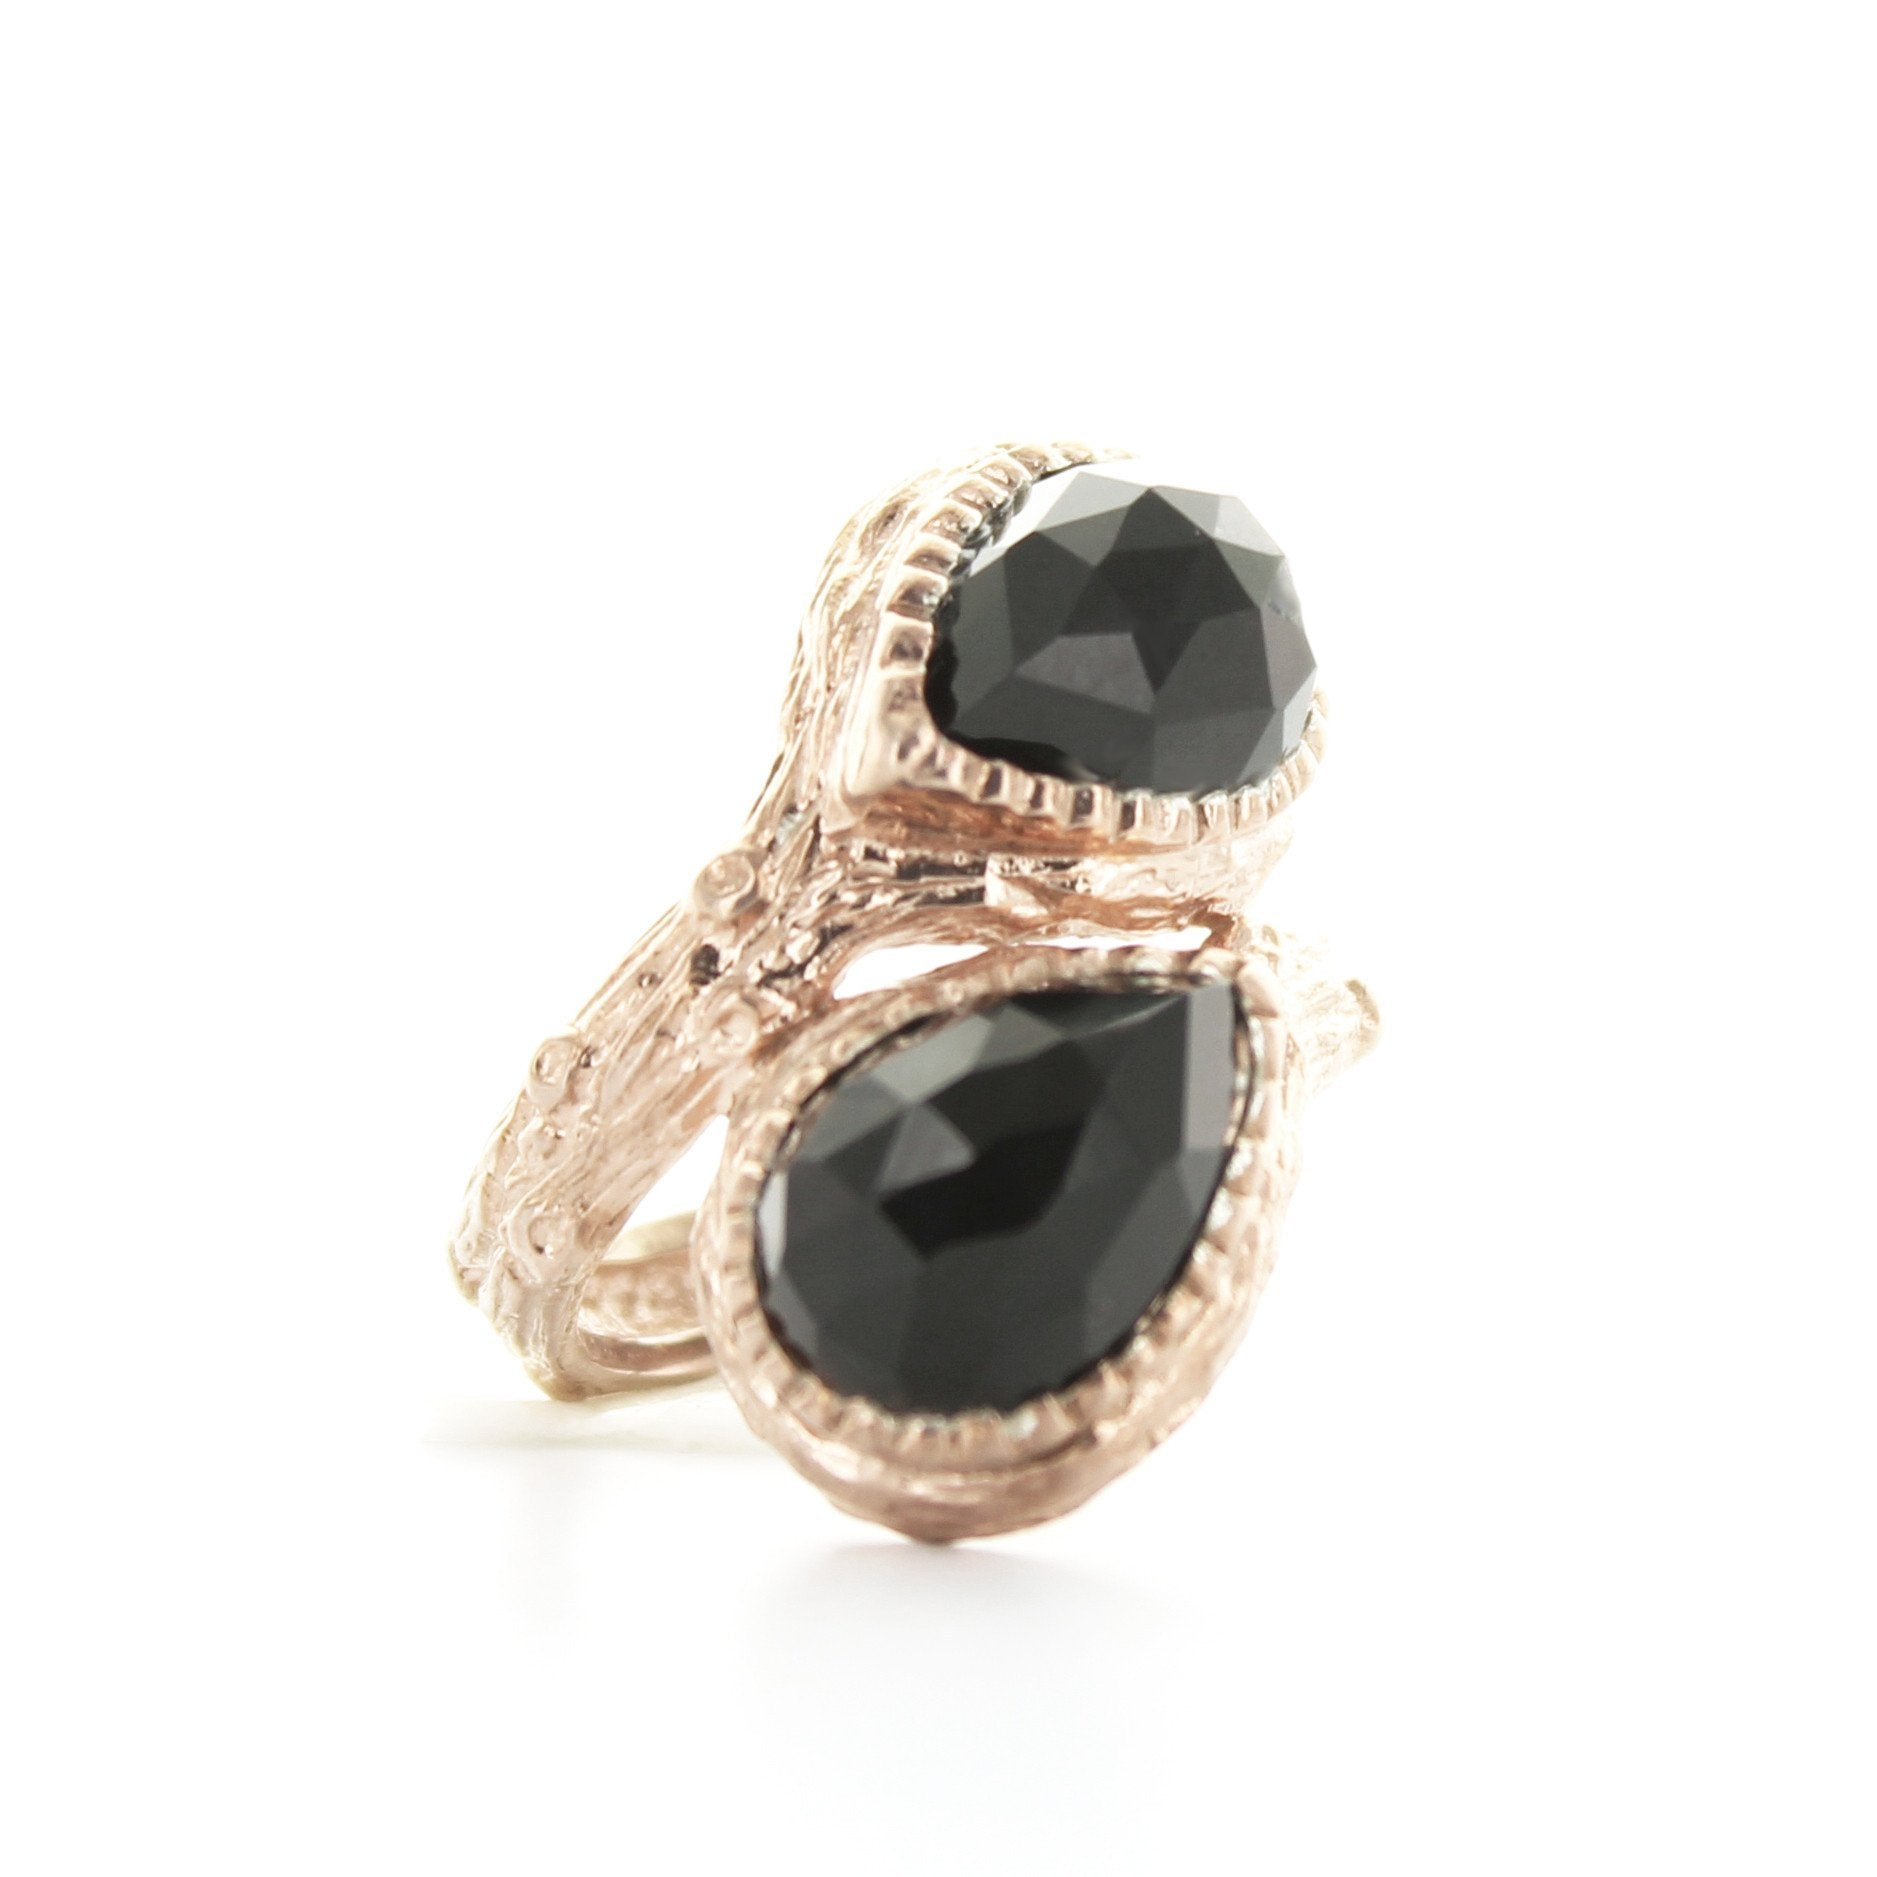 DOUBLE ADORE RING - BLACK ONYX & ROSE GOLD - SO PRETTY CARA COTTER